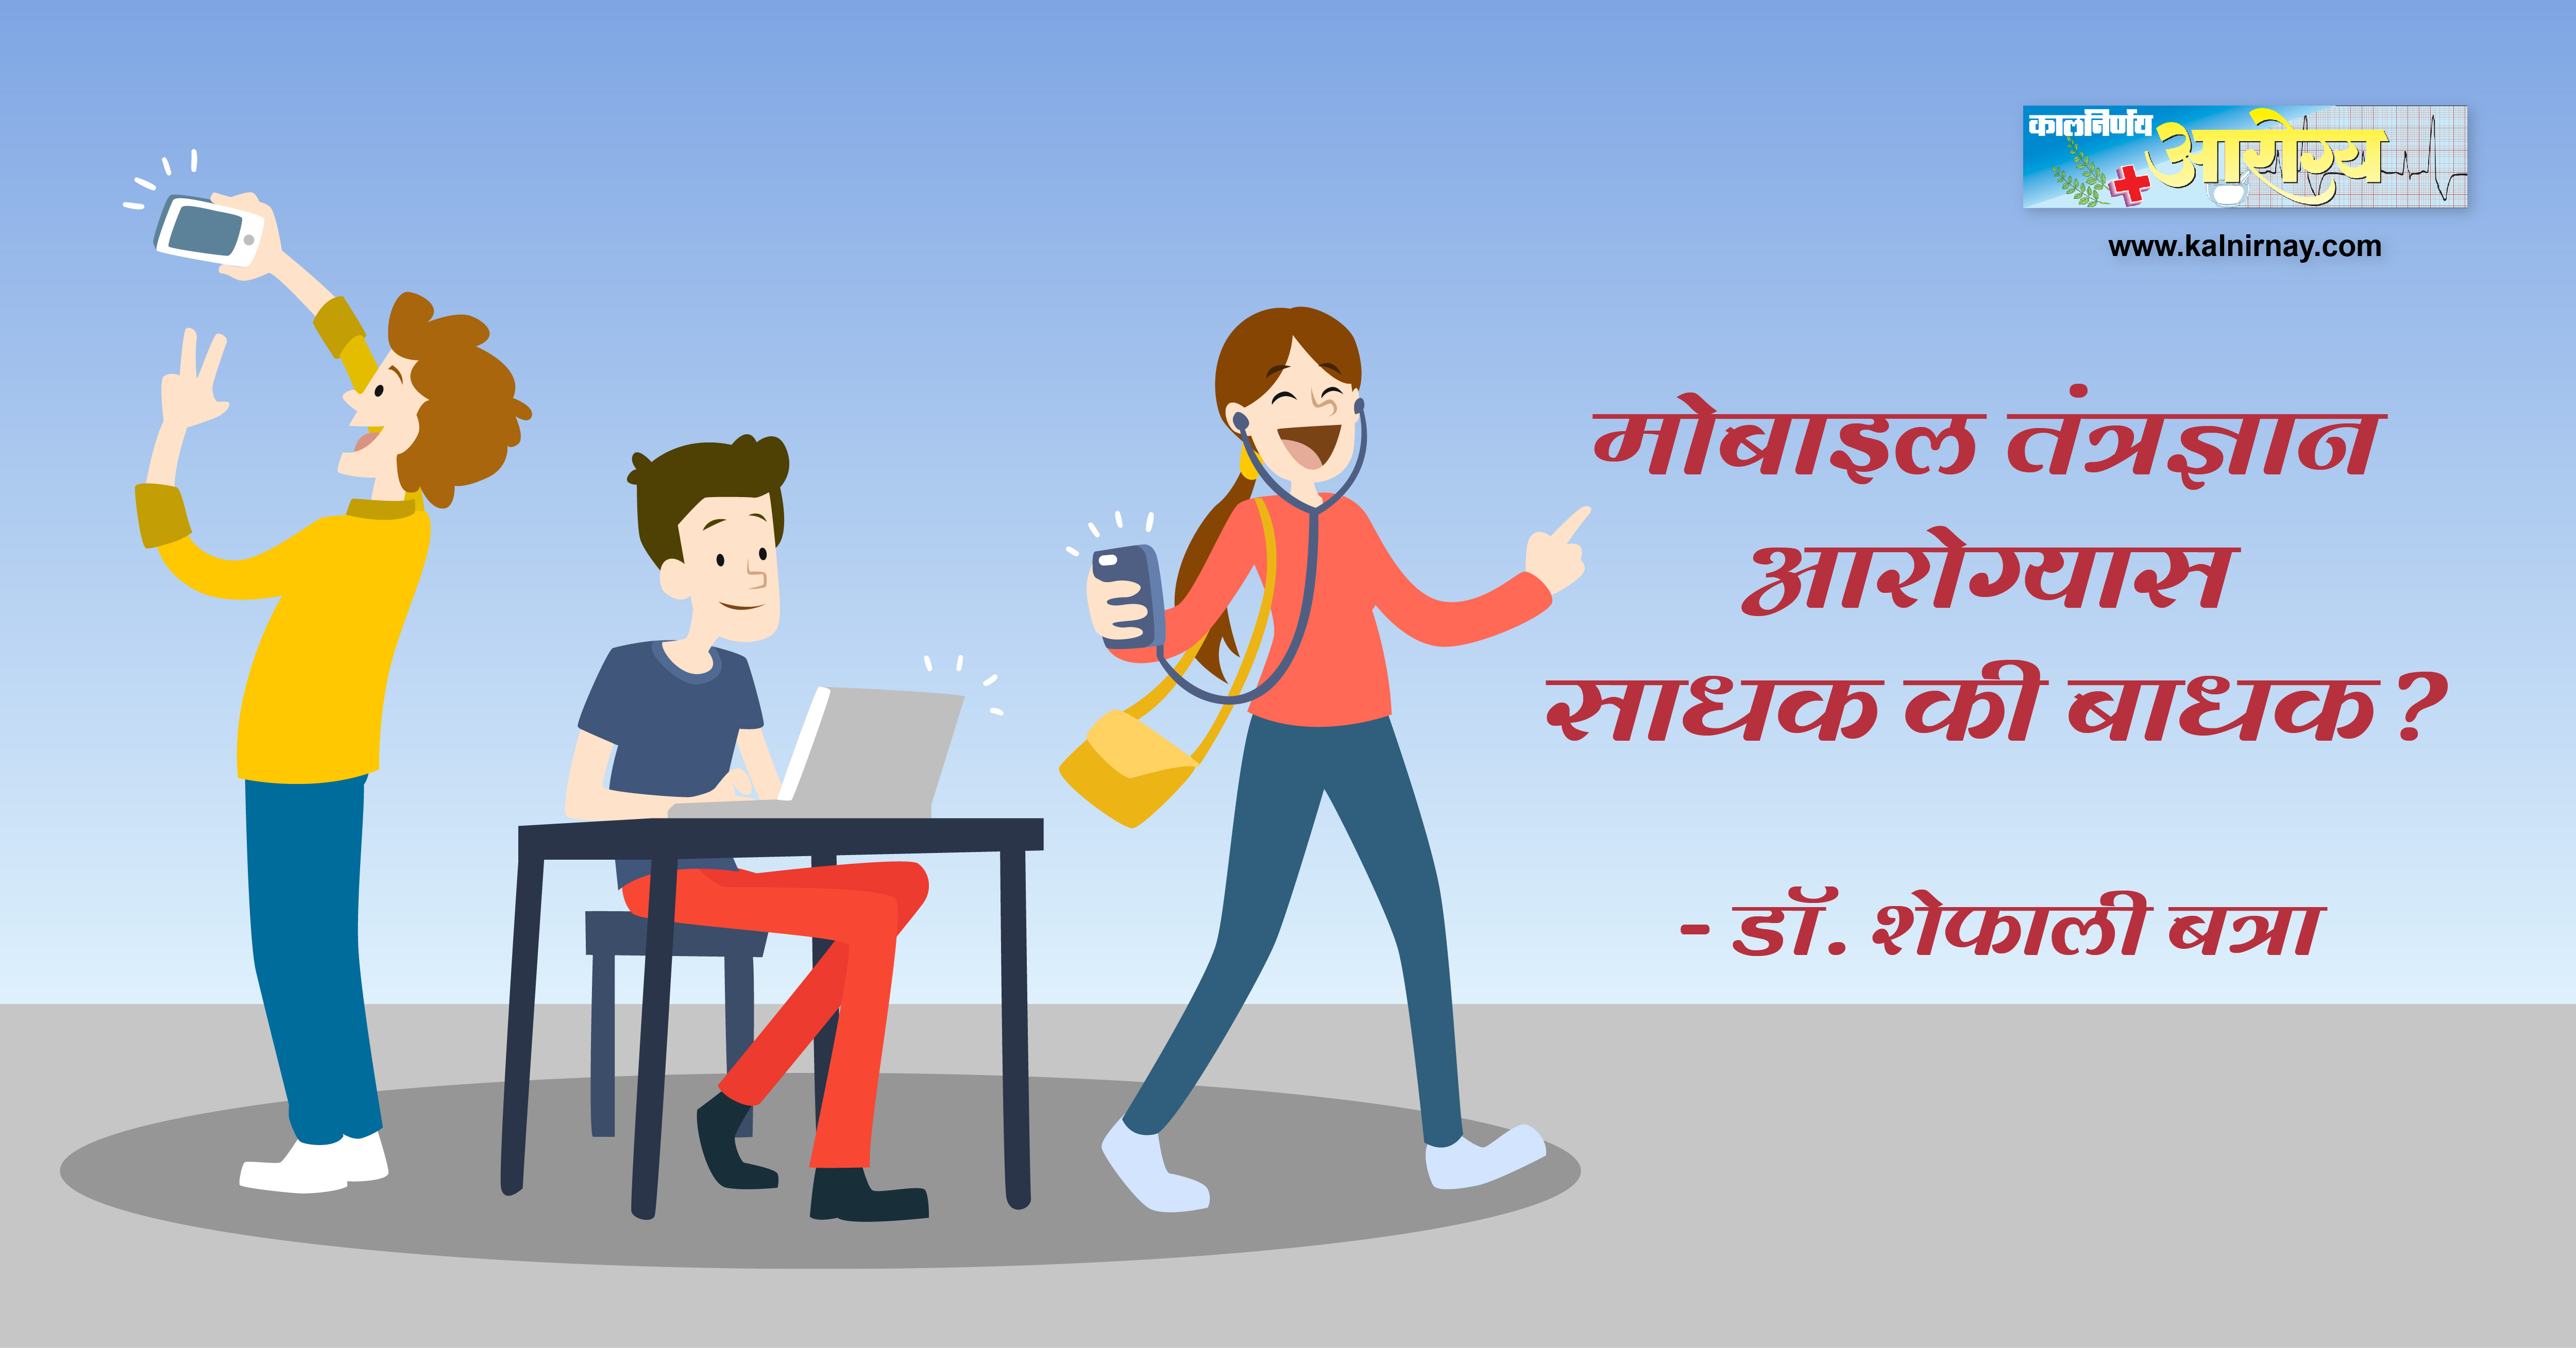 मोबाइल | electronic gadgets and their uses | electronics advantages and disadvantages | misuse of mobile phones | negative effects of electronic gadgets